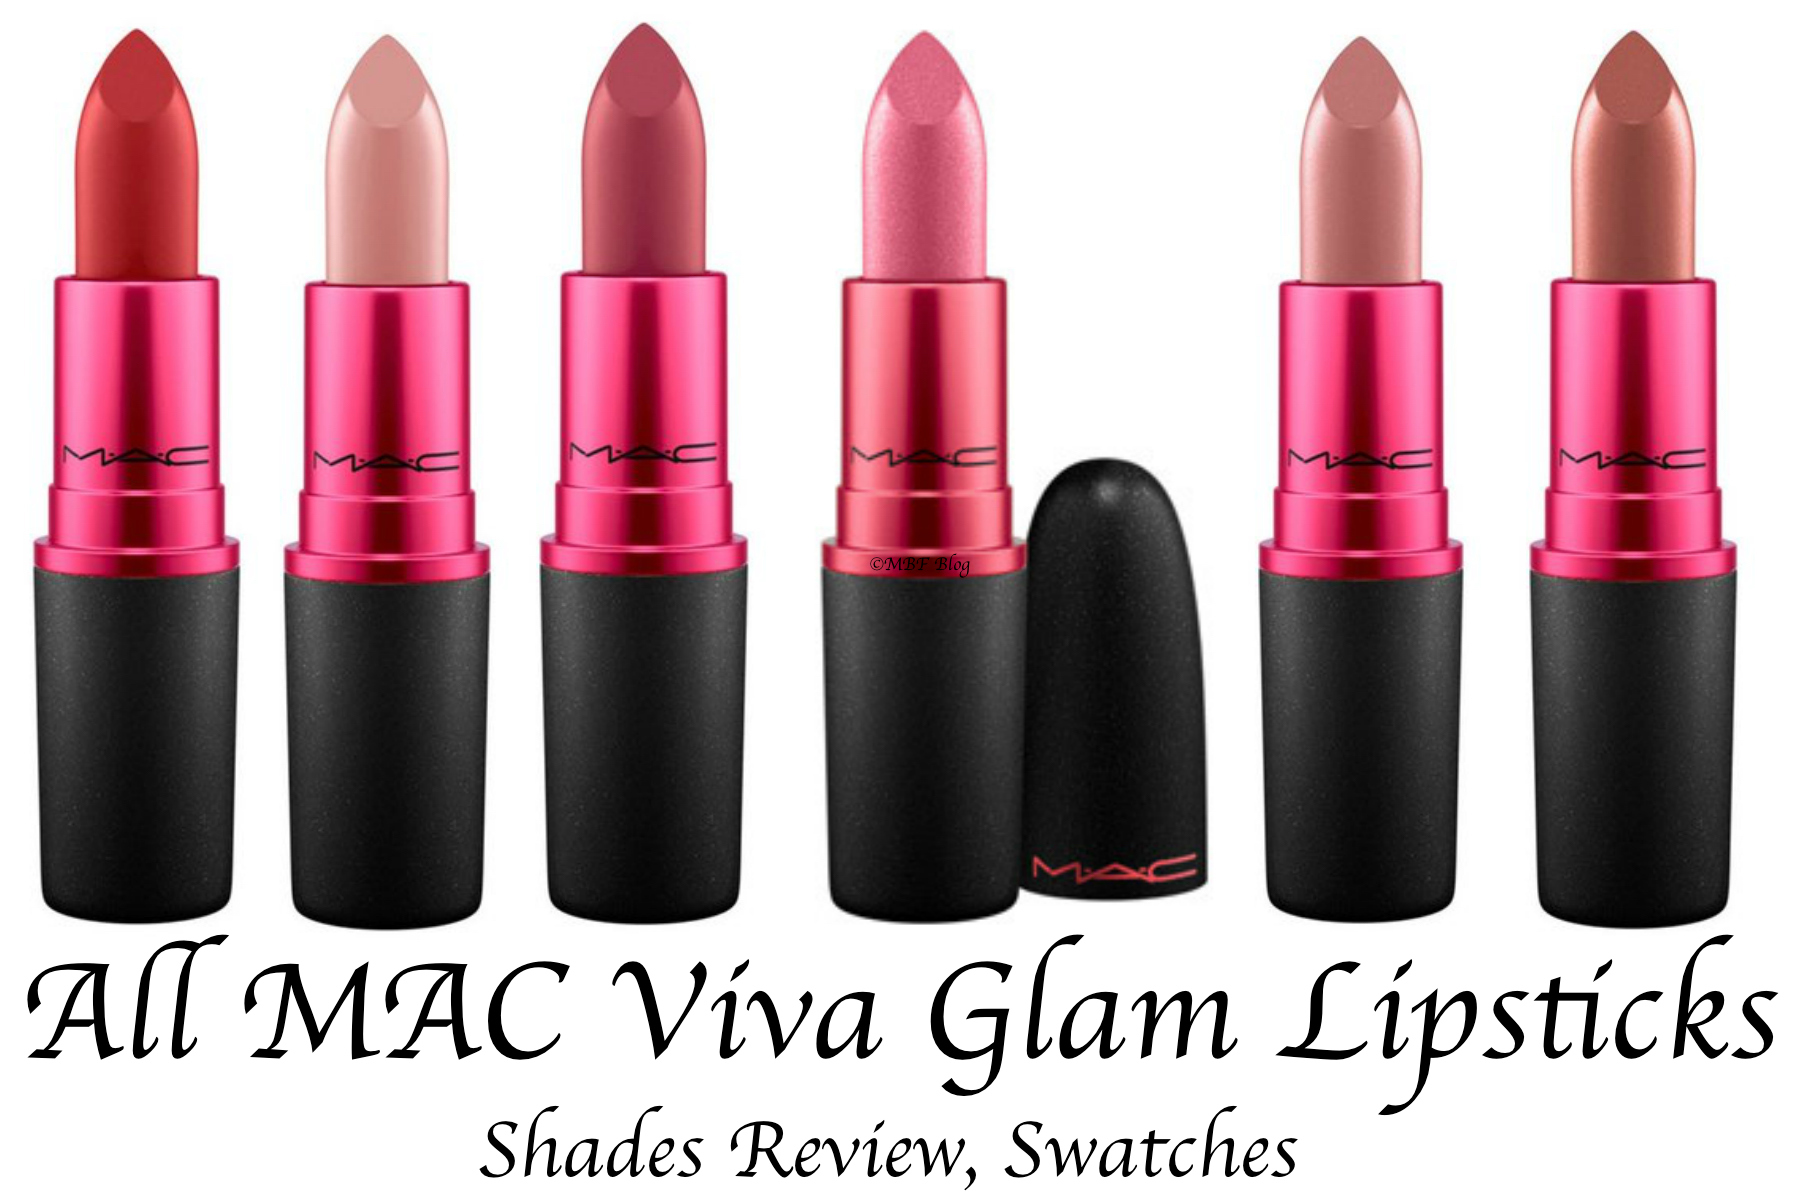 All MAC Viva Glam Lipsticks Shades Review, Swatches MAC ...